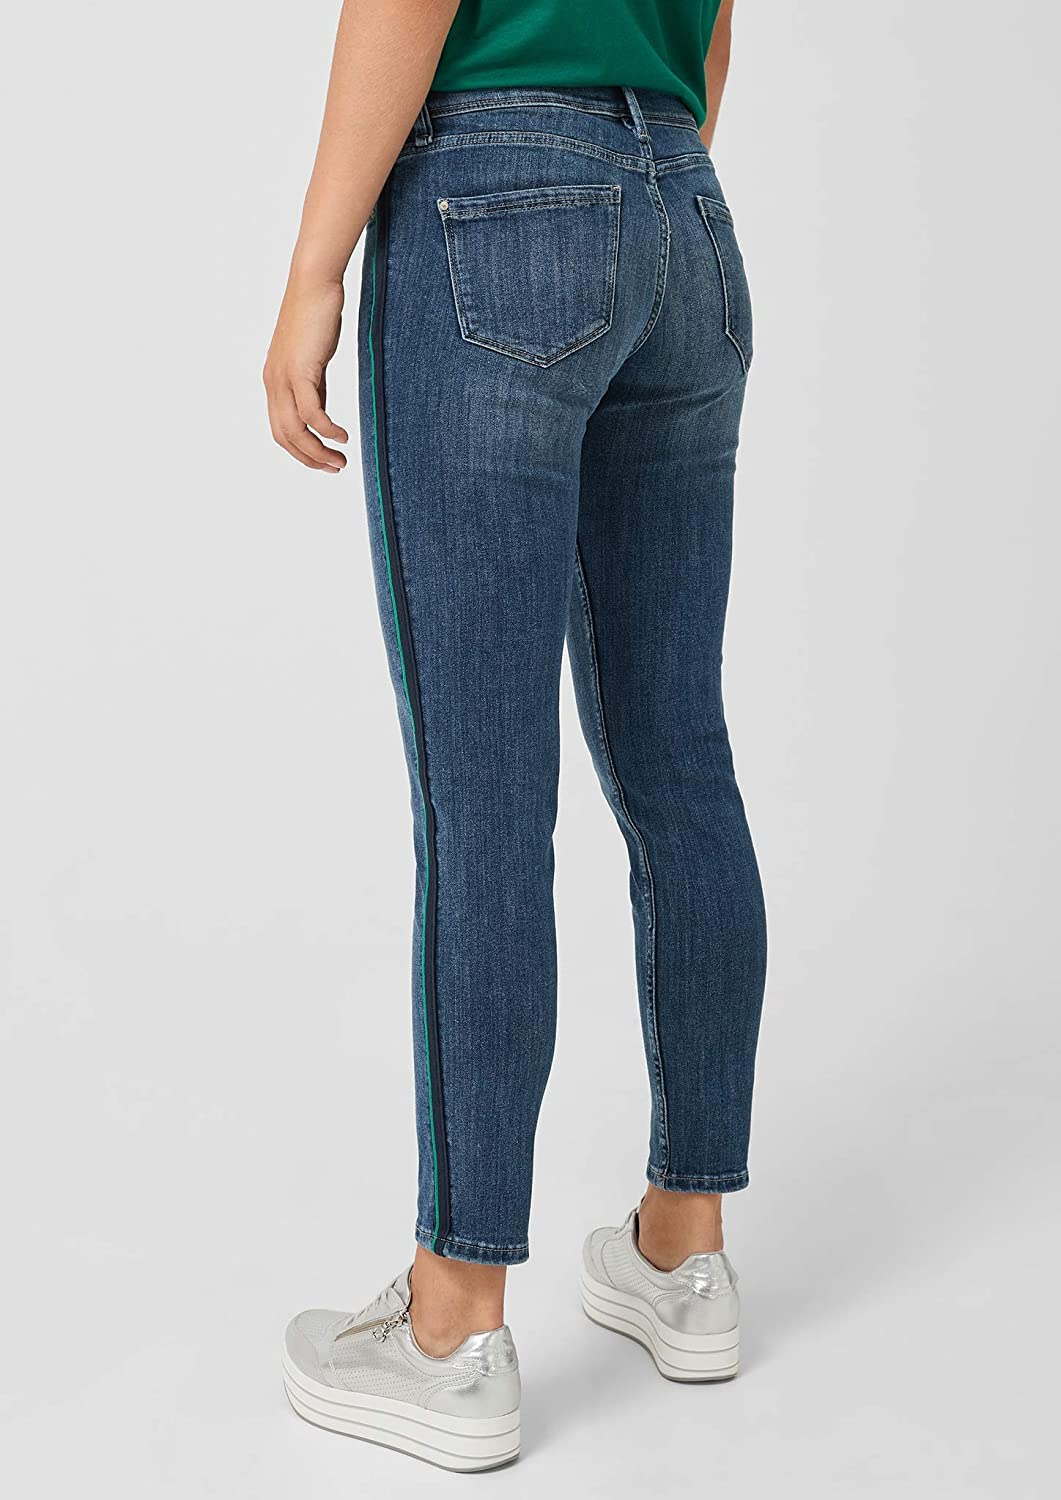 s.Oliver Pantalon Femme Bleu (Blue Denim Stretch 55z6)